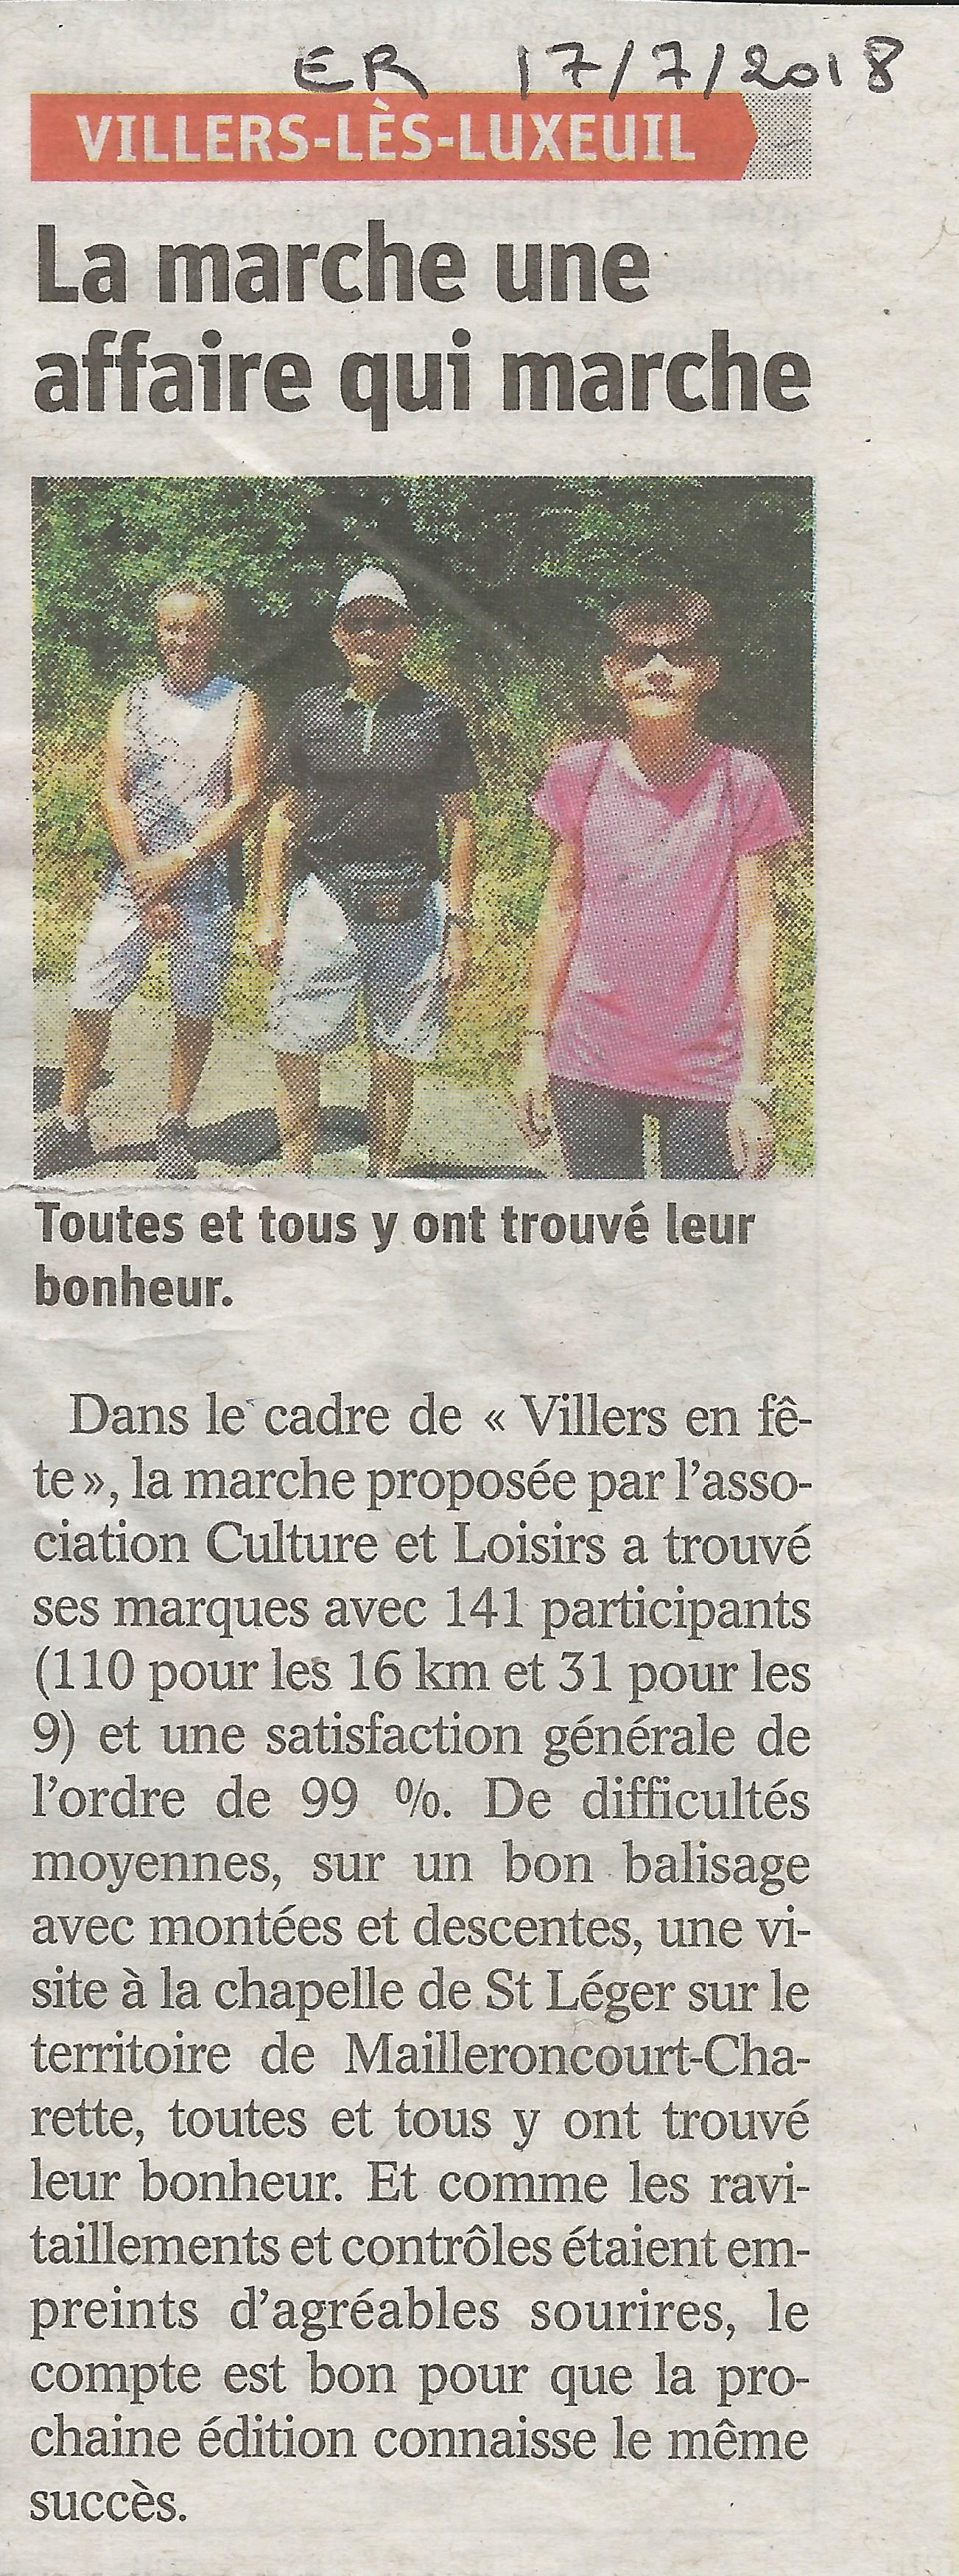 https://www.villers-les-luxeuil.com/projets/villers/files/images/2018_Mairie/Presse/2018_07_17.jpg